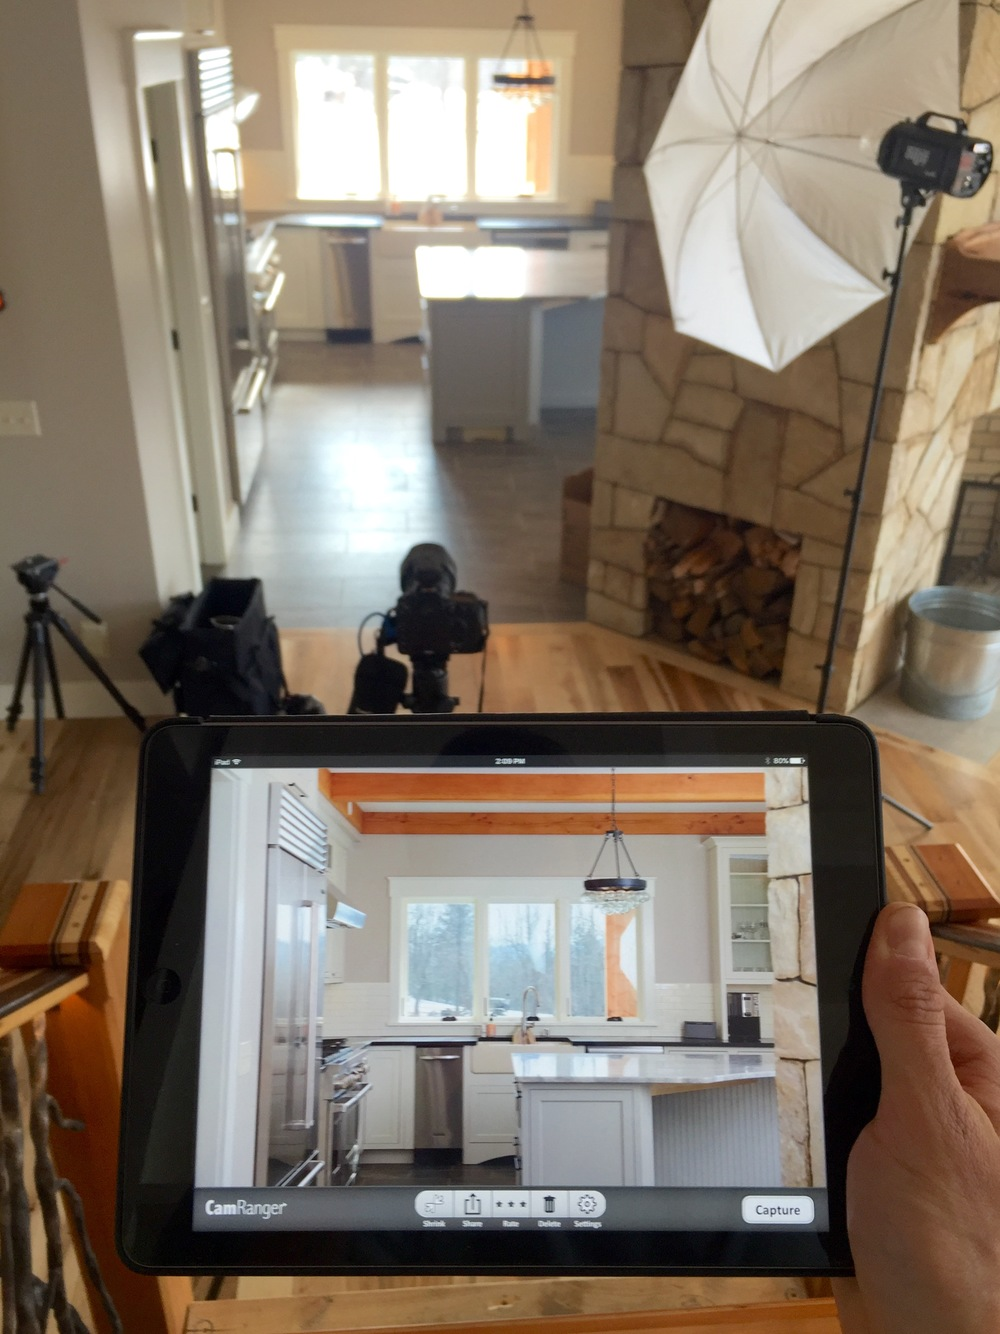 Behind the scenes, shooting the kitchen, as viewed through the CamRanger iPad app.